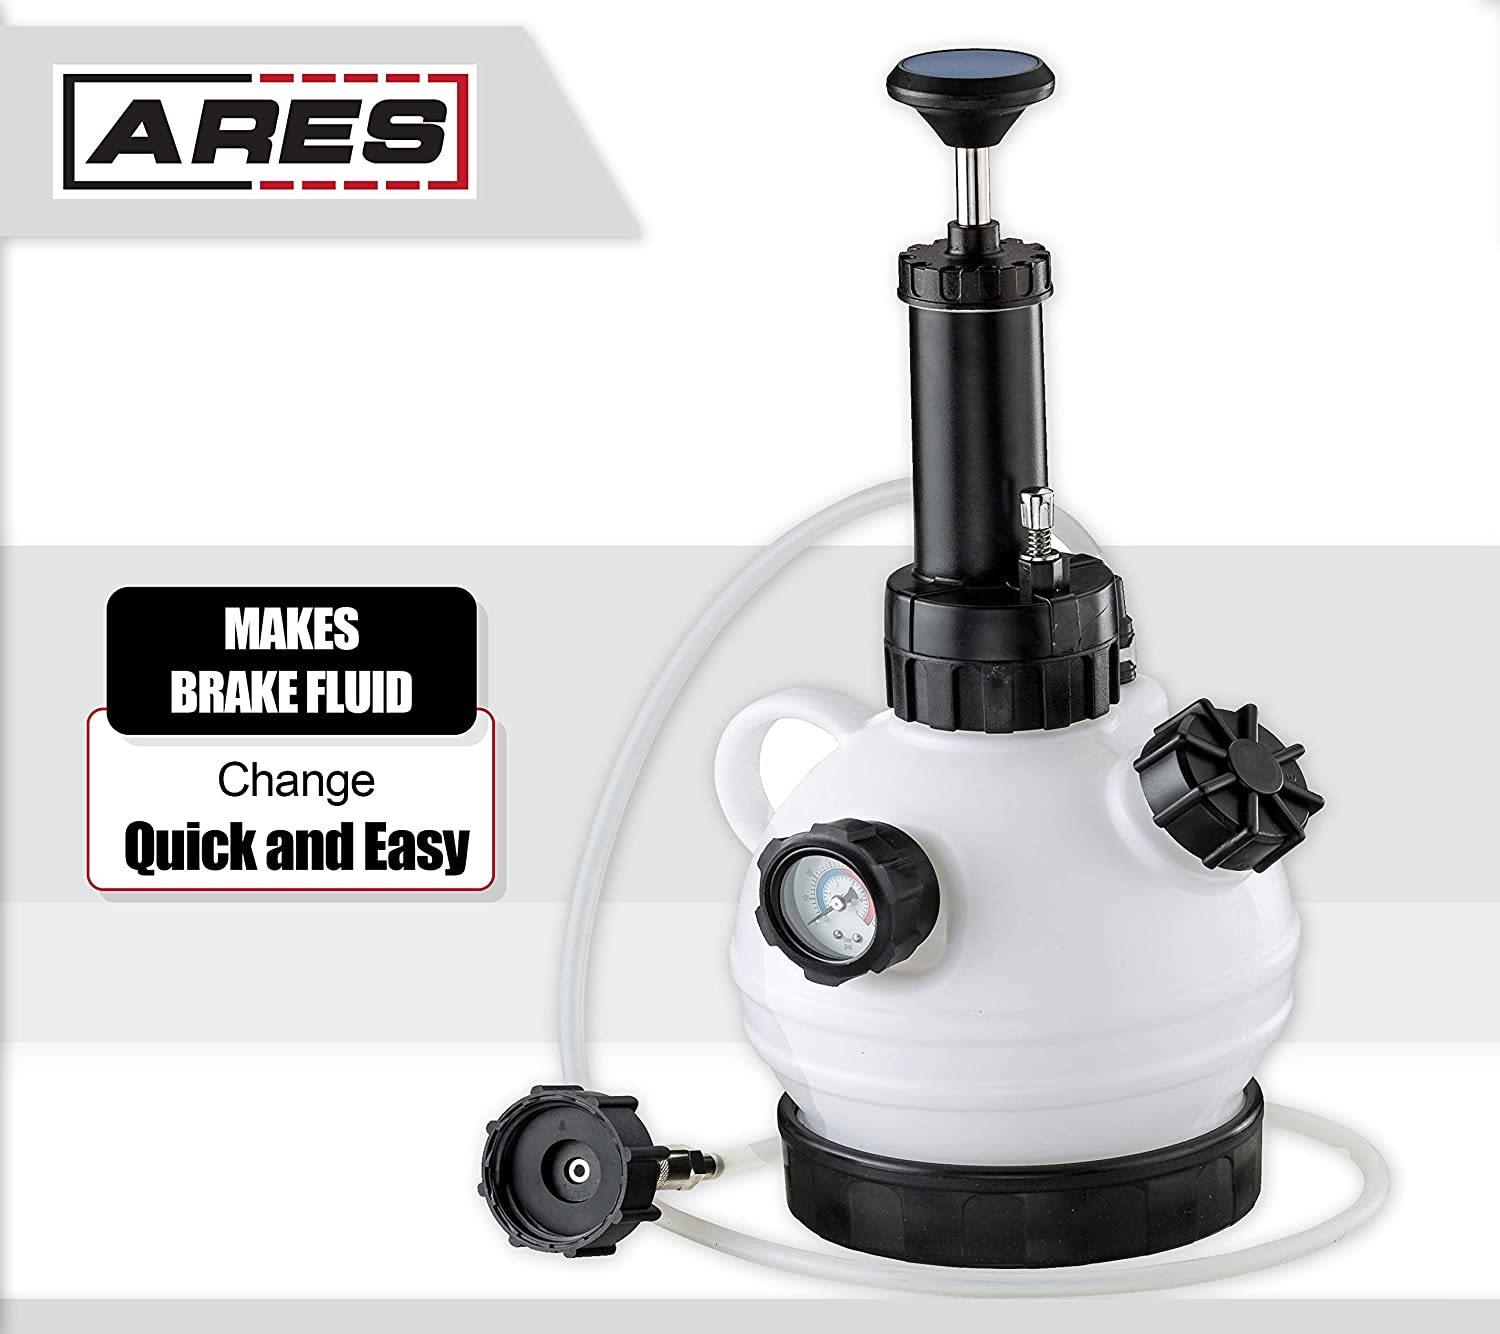 Brake Bleeder 2L Large-Capacity Oil Pump, 1L Rehydration Bottle Fluid Extractor-Vacuum Brake Air Nozzle Air Brake Air Nozzle Kit Compatible with Most Standard Braking Systems and ABS Braking Systems RYANSTAR RACING Brake Bleeder Kit